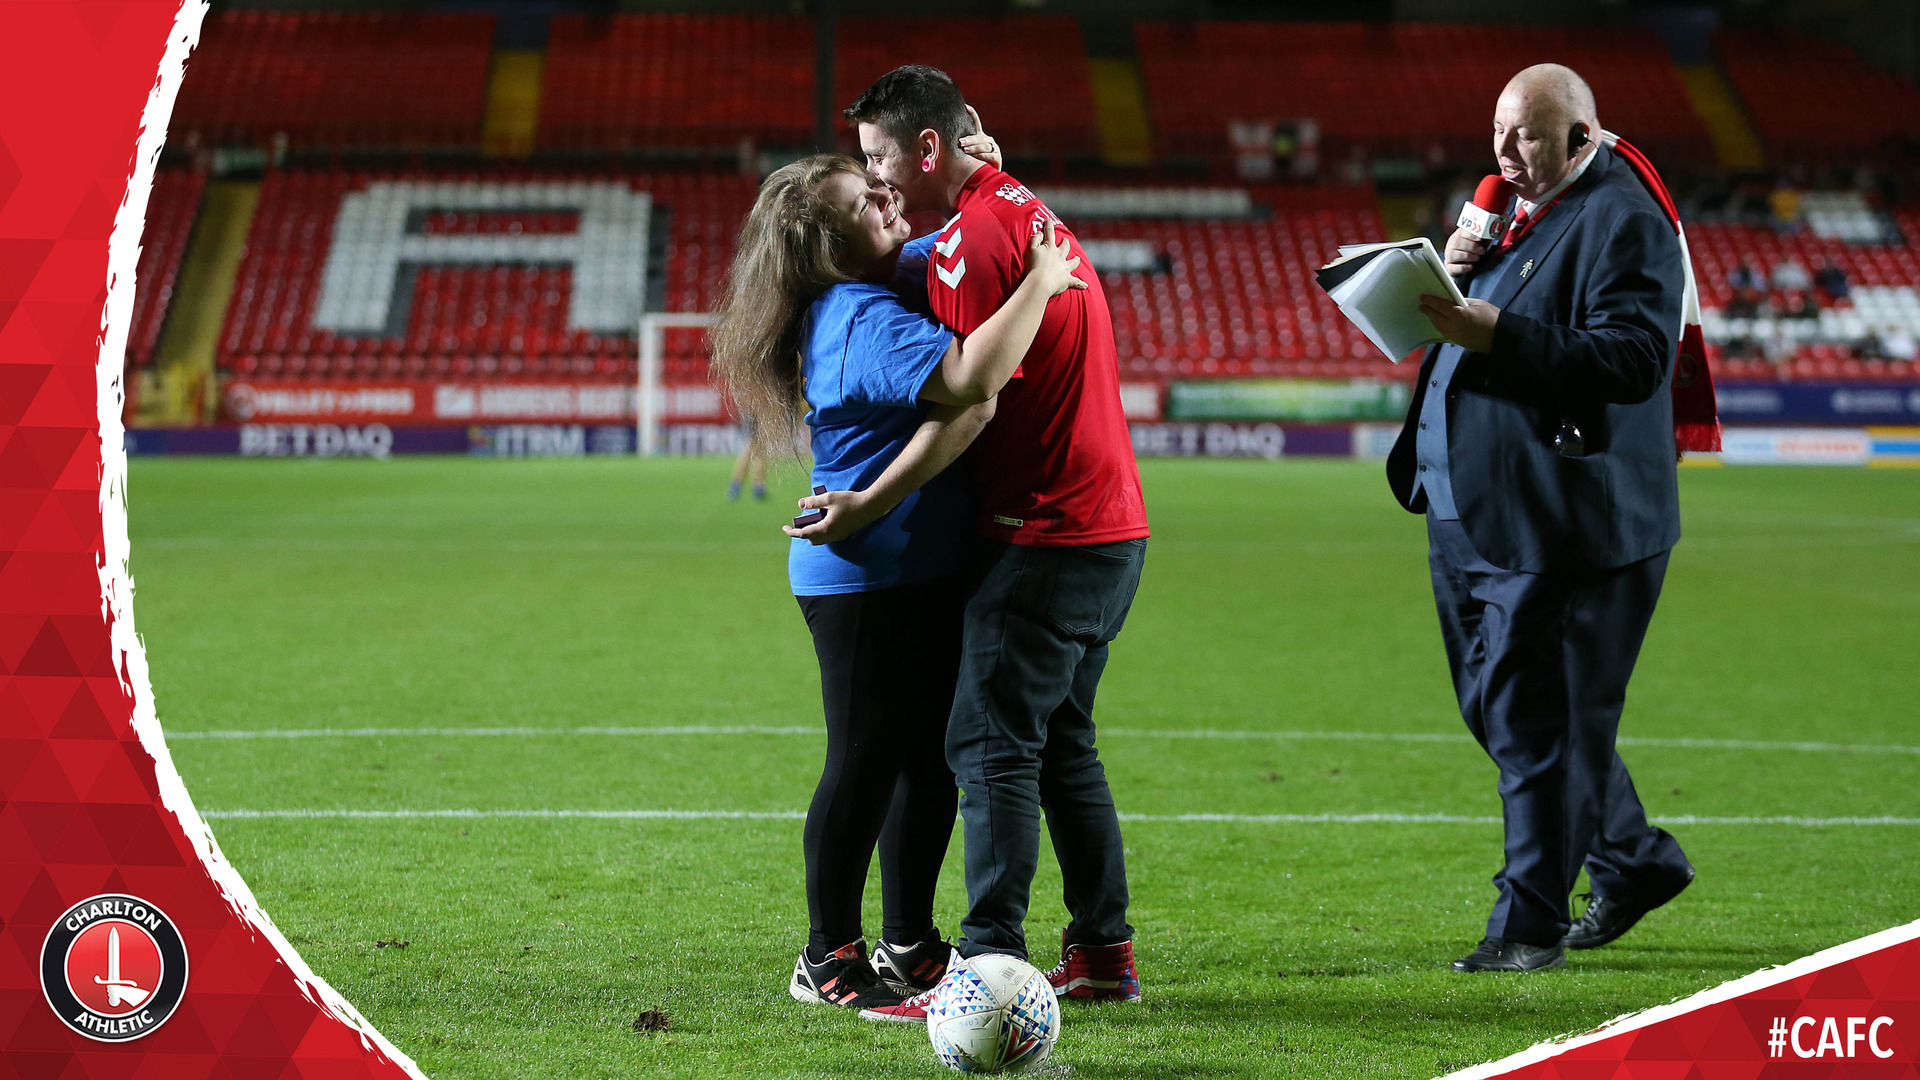 Charlton fan Keiron proposes to his girlfriend Lauren at The Valley